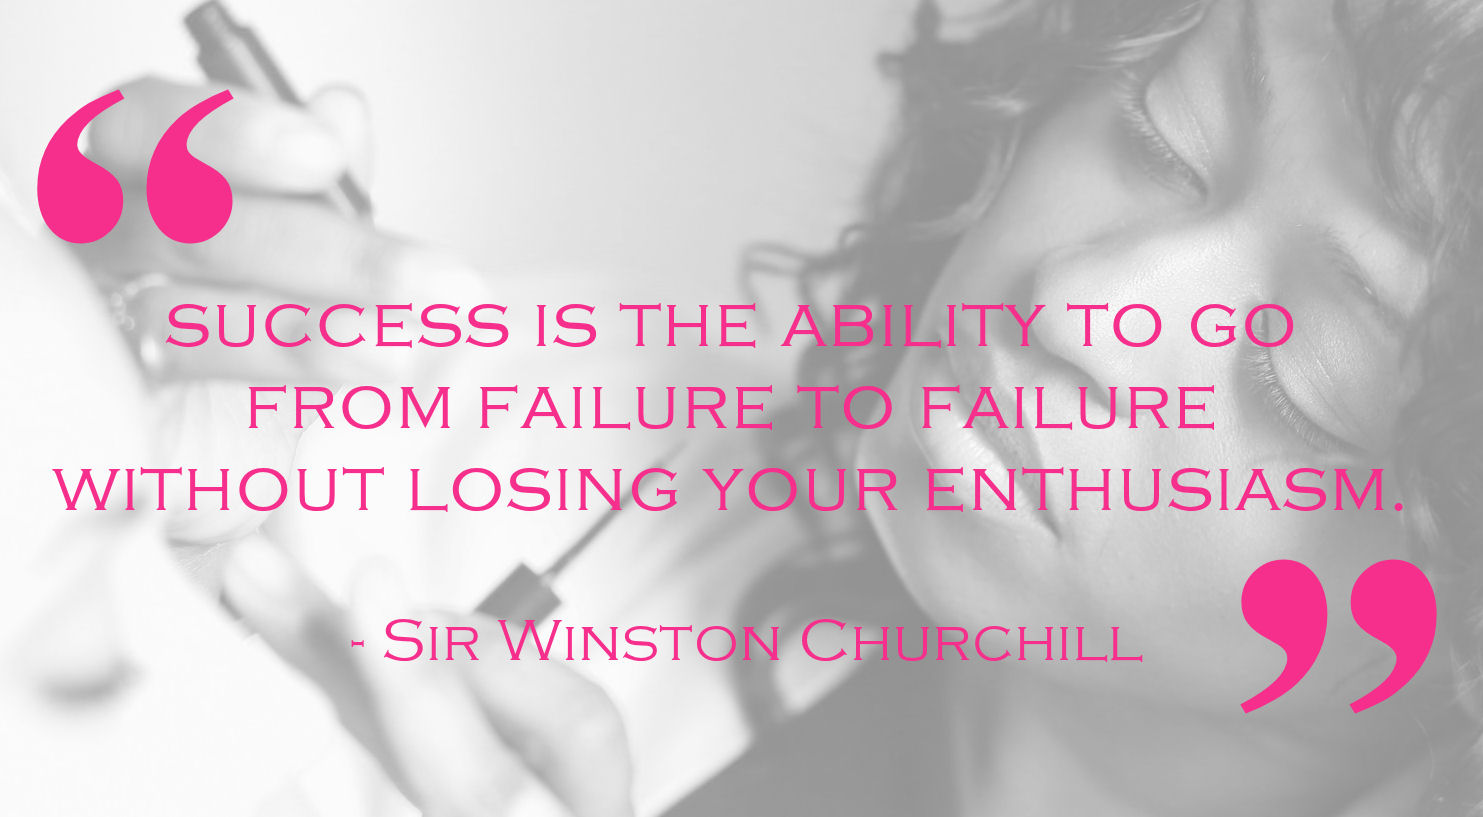 Success is the ability to go from failure to failure without losing your enthusiasm.  - Sir Winston Churchill